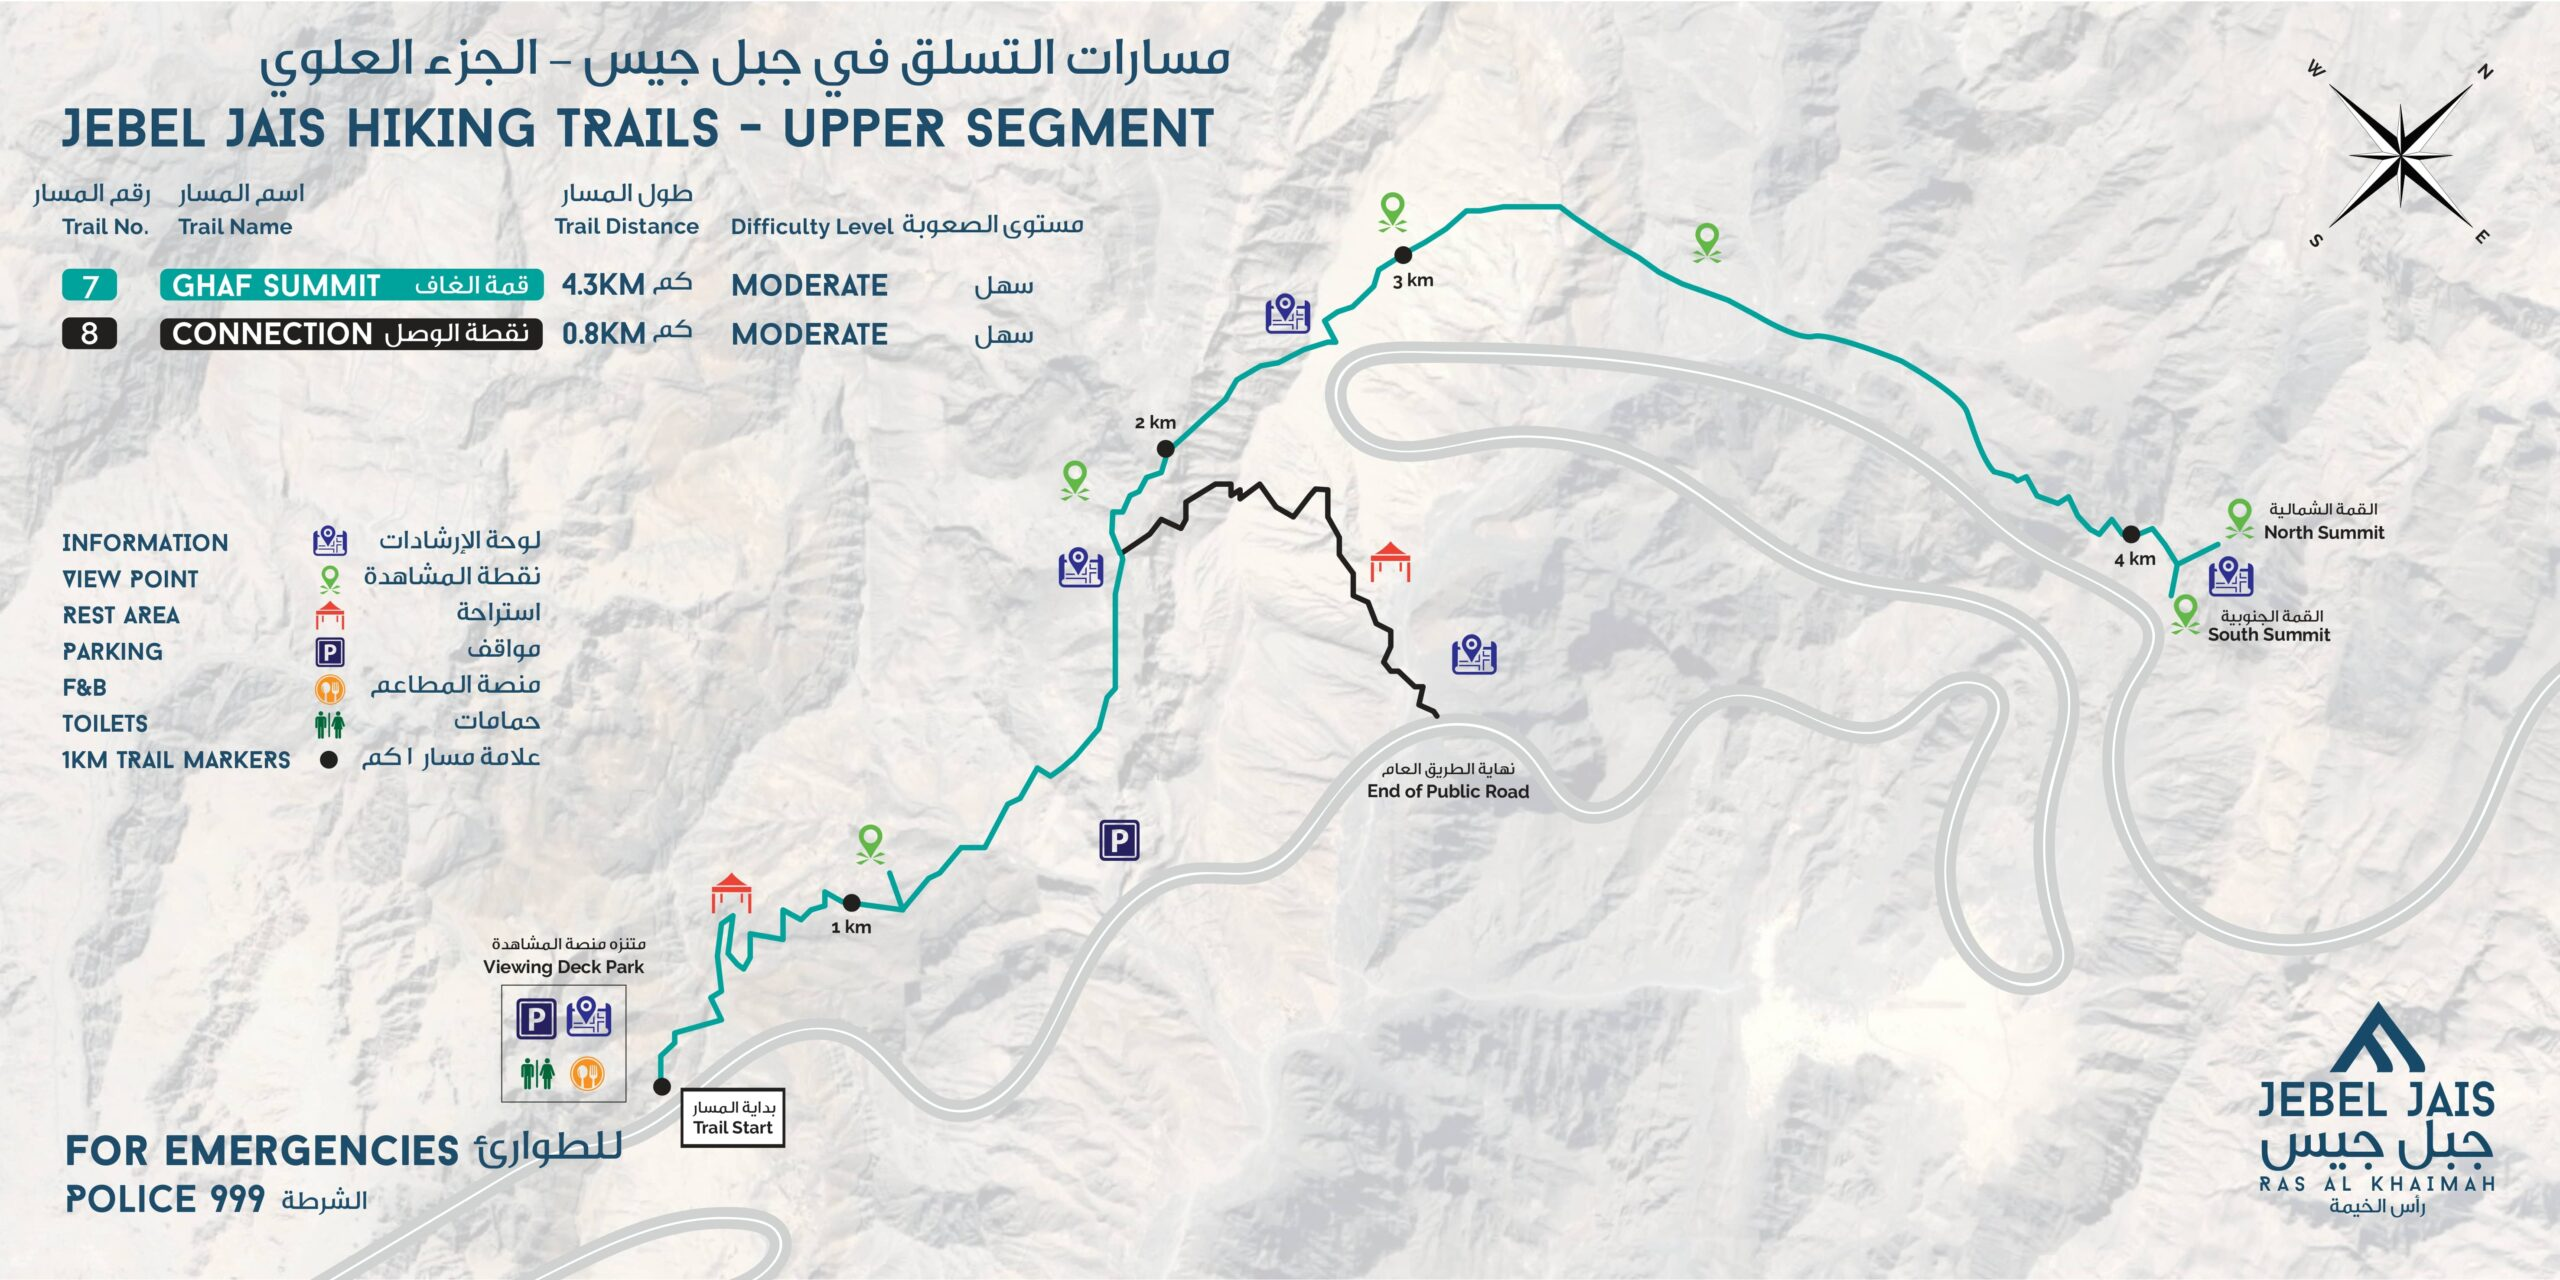 Jebal Jais Upper Segment Trail Map